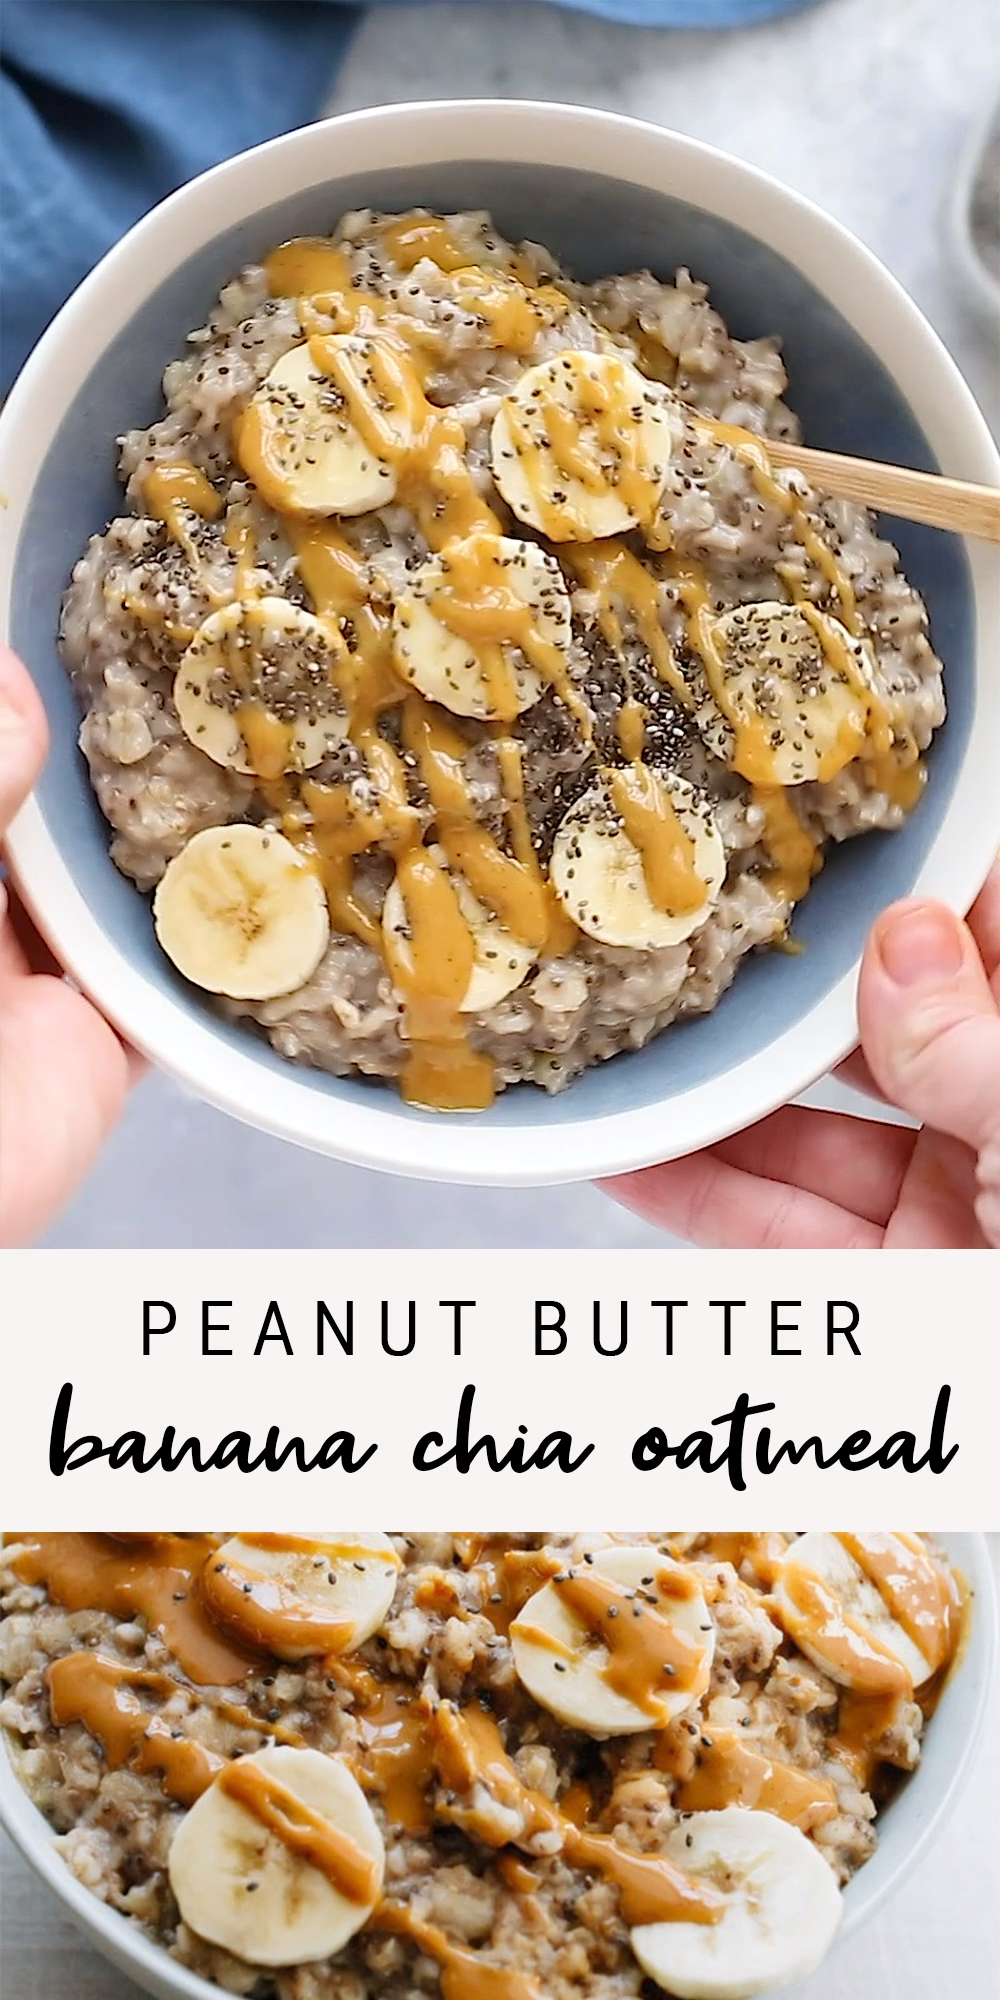 Peanut Butter Banana Chia Oatmeal The ultimate healthy breakfast recipe this peanut butter banana oatmeal is creamy voluminous and will keep you full all morning long Plu...